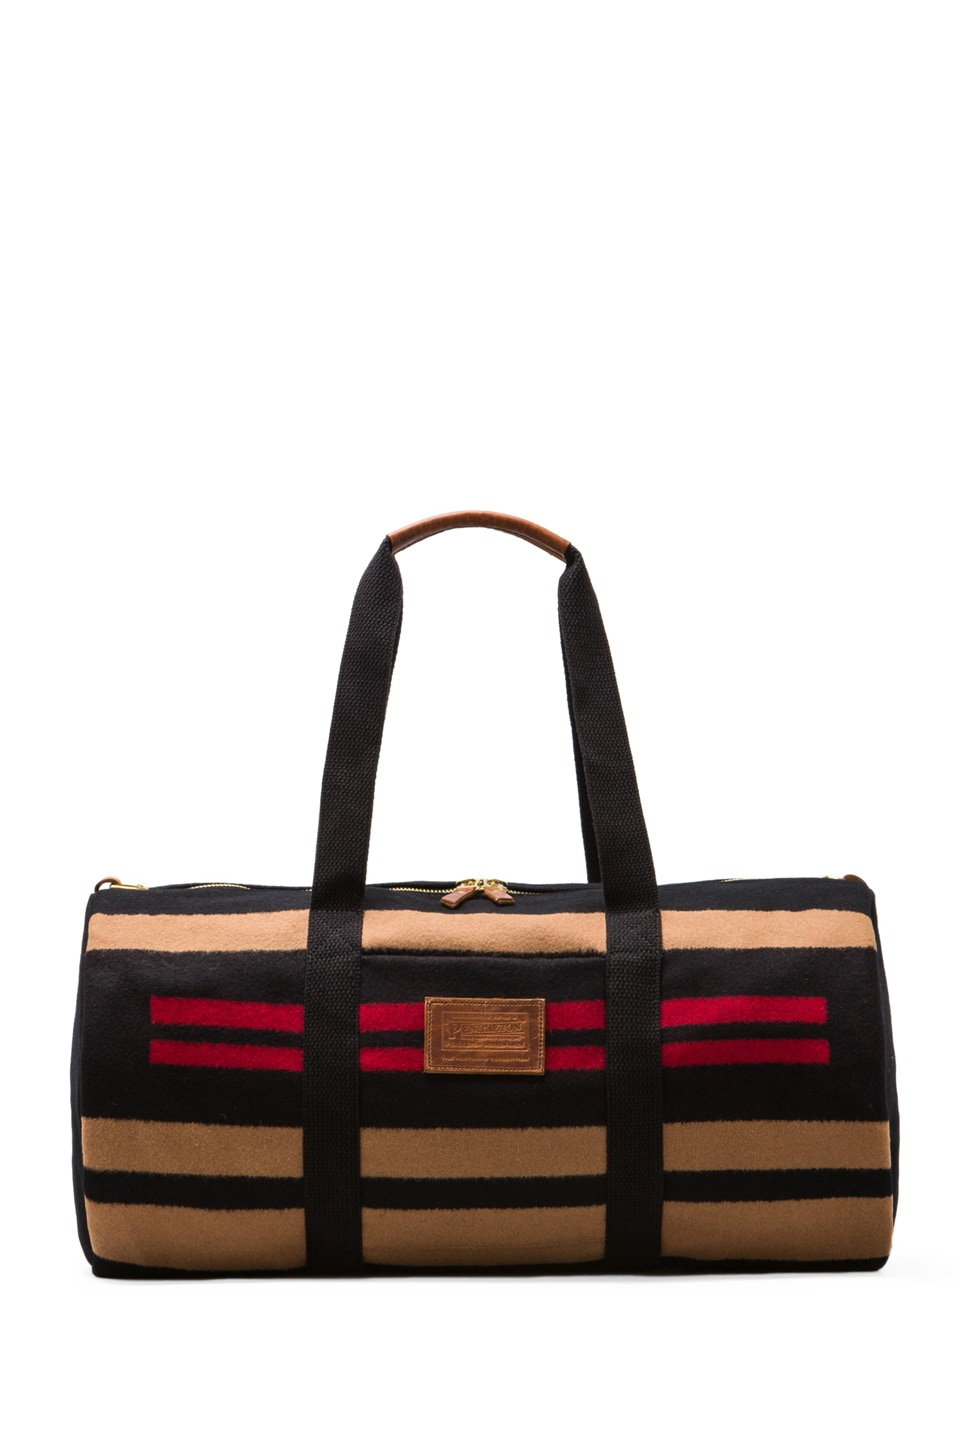 The Portland Collection by Pendleton Lonerock Duffel Bag in Pinyon Stripe